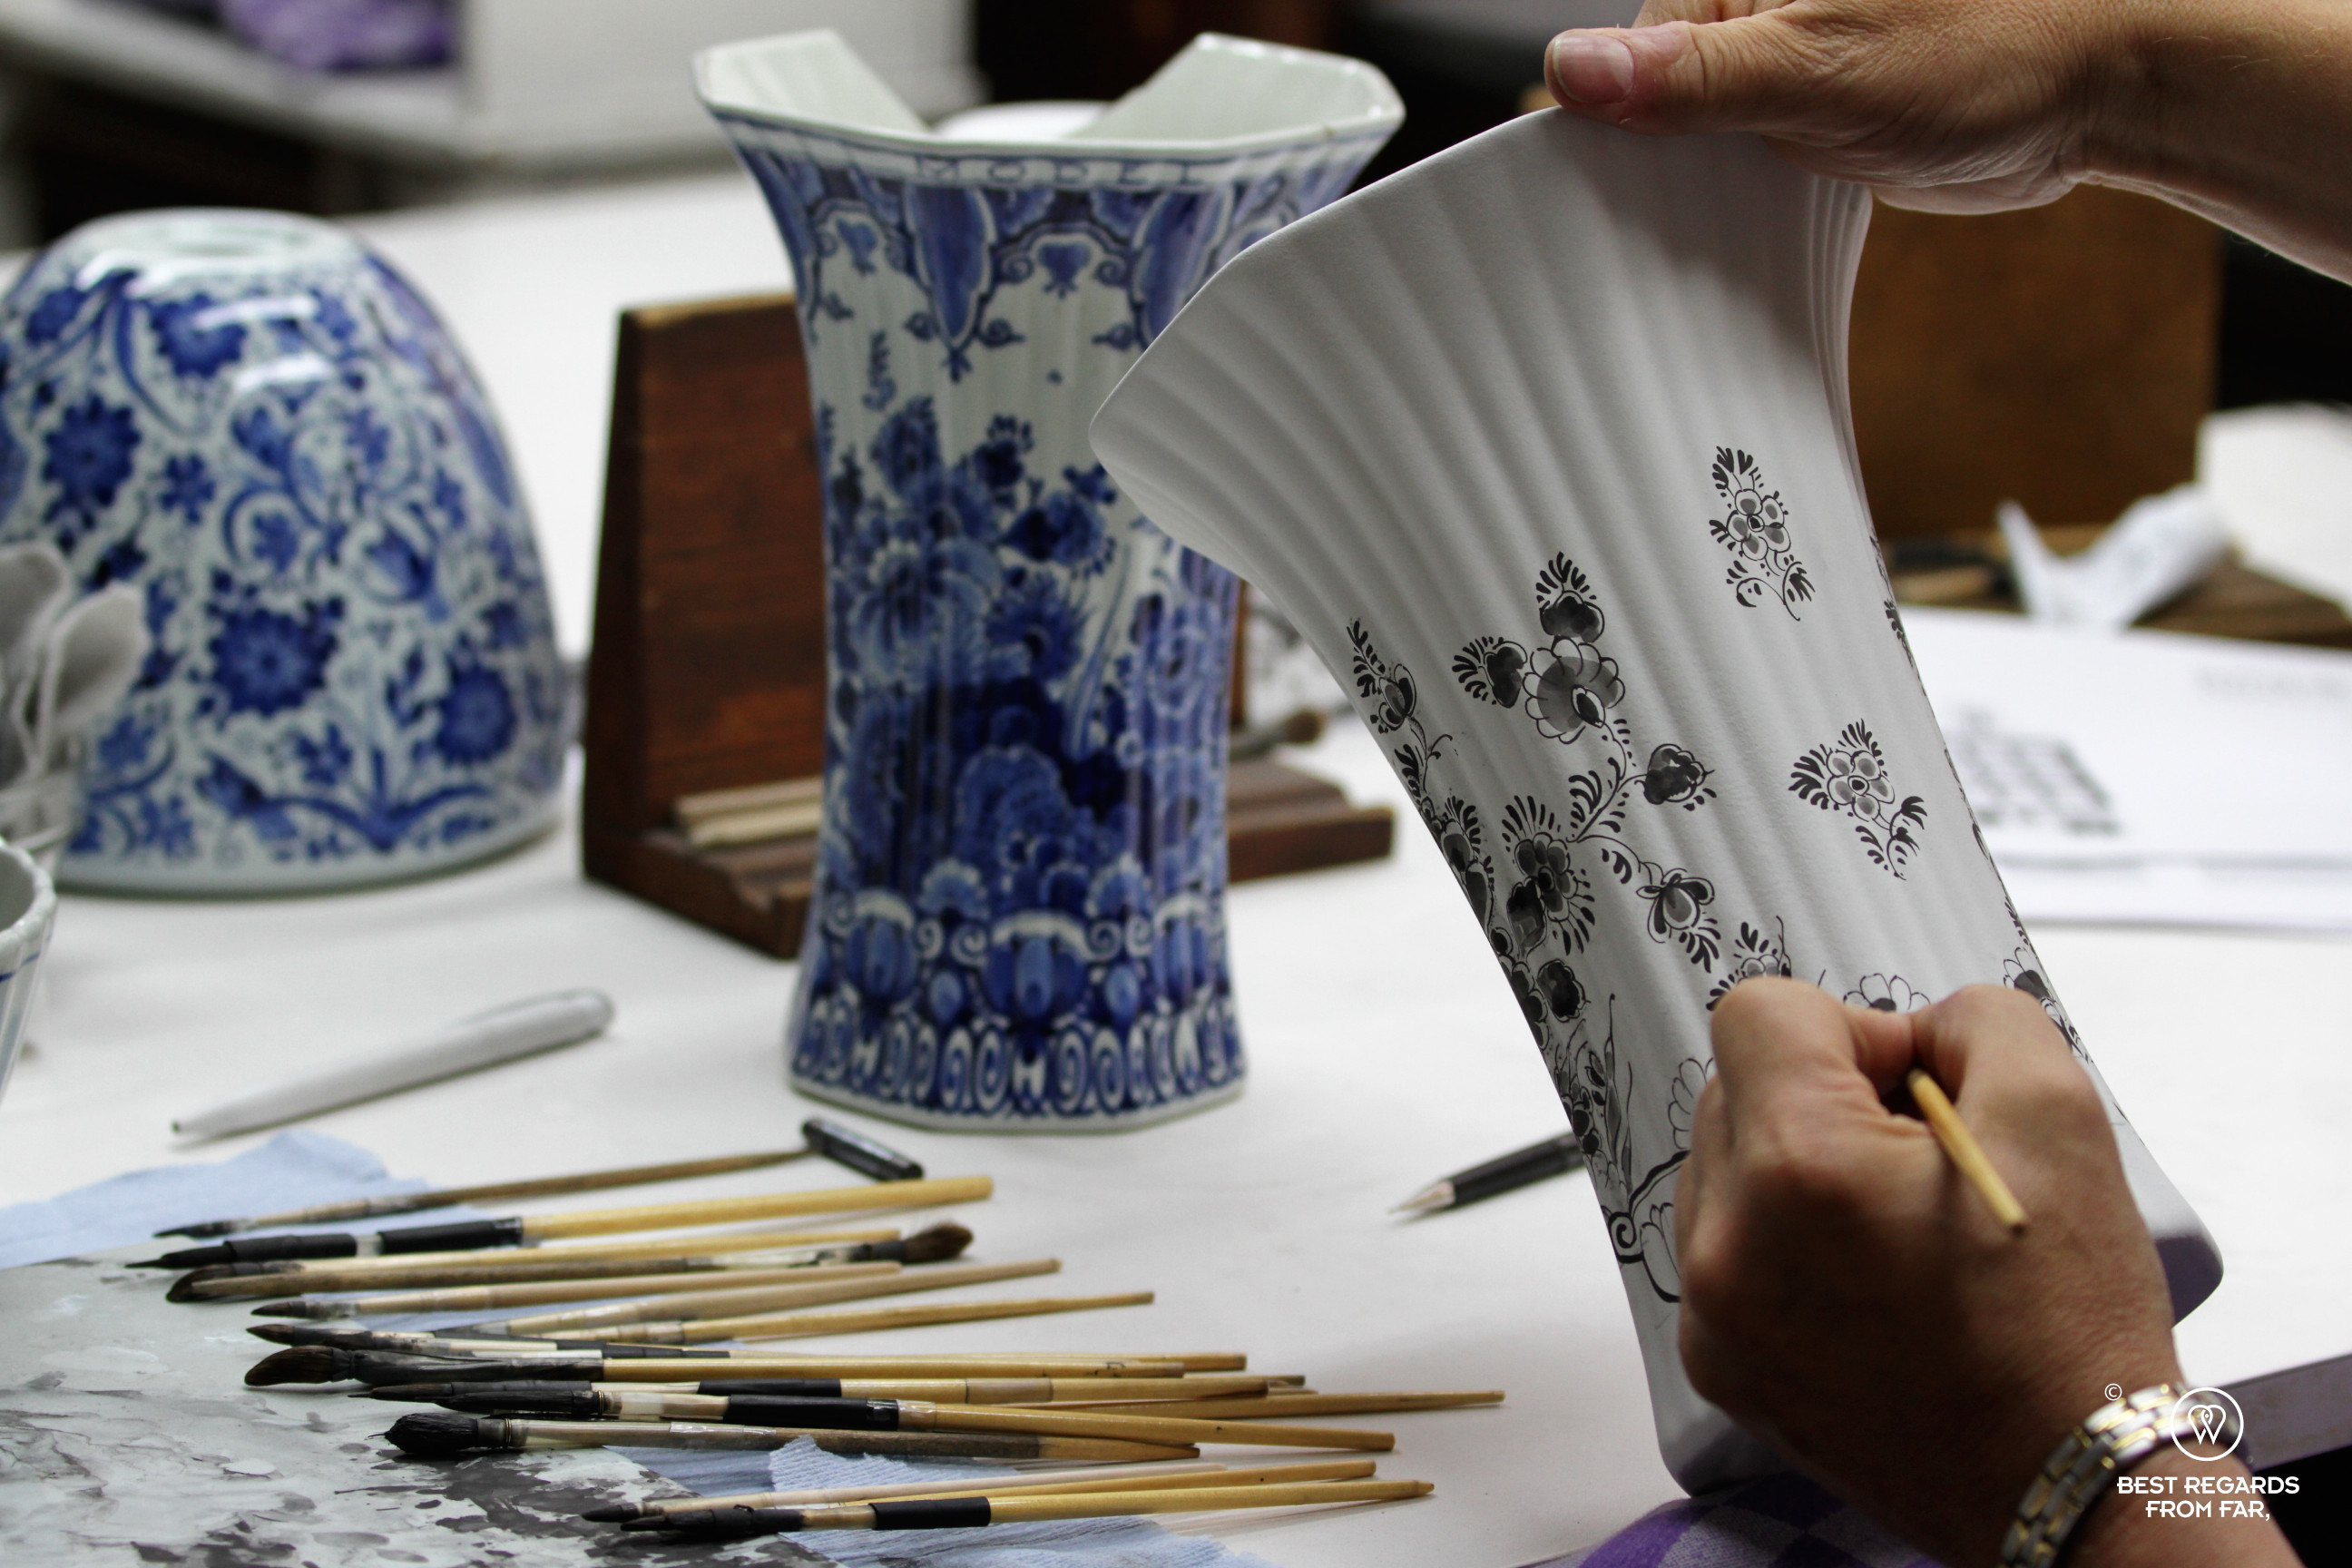 Master painter hand-painitng a vase, the Royal Delft museum, the Netherlands